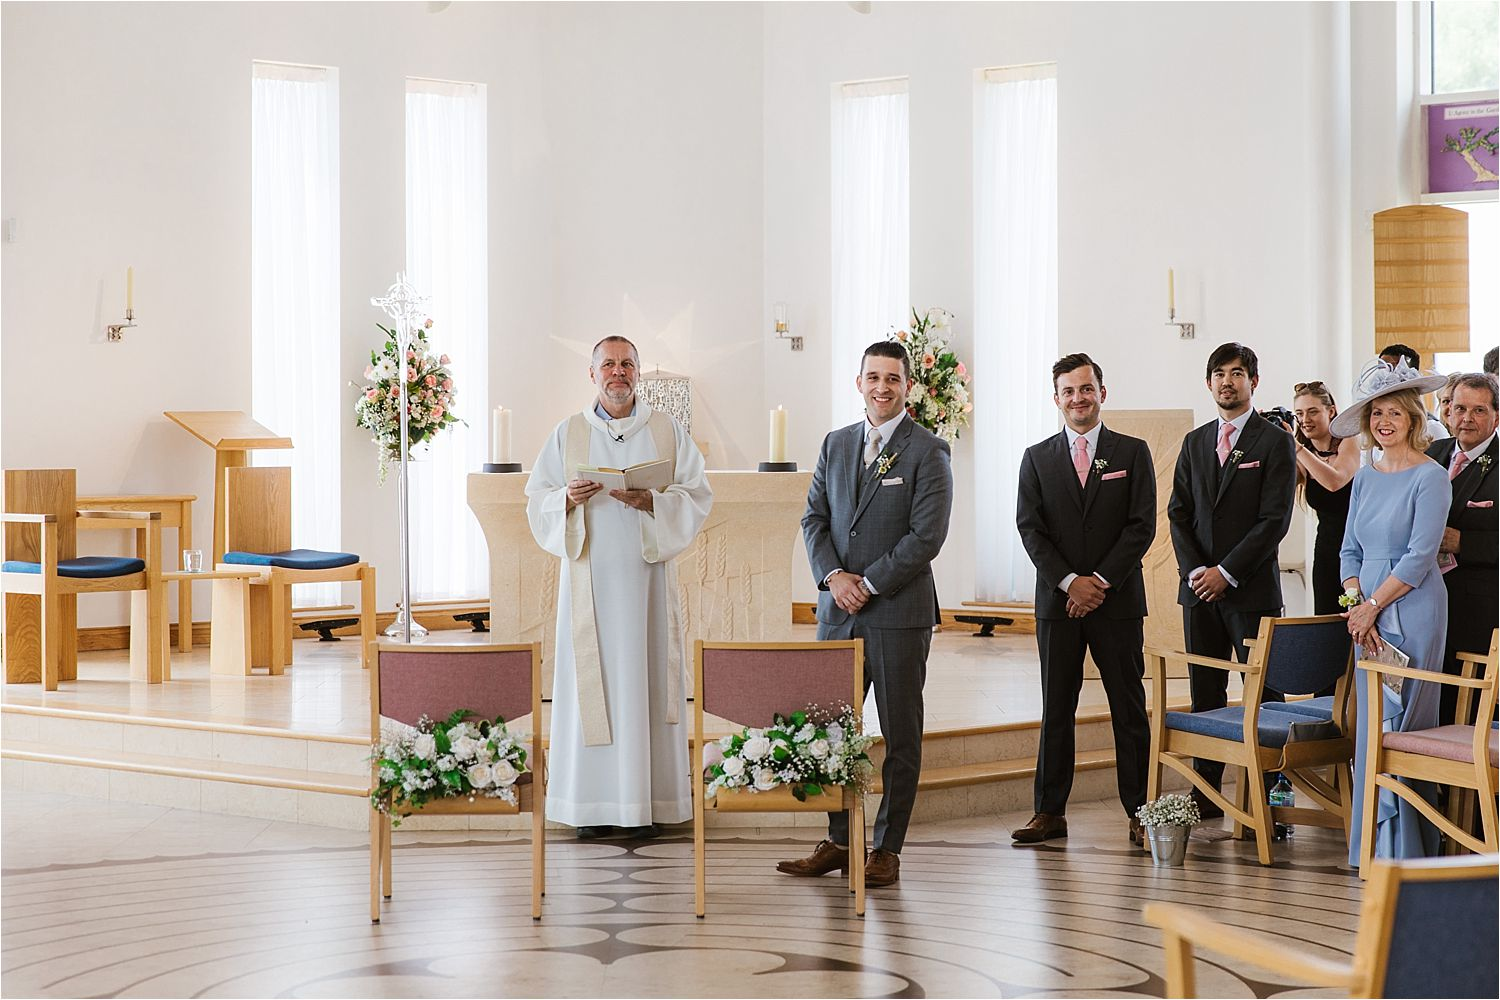 Bridegroom looks back to see his bride walking down the aisle at wedding ceremony in Cheshire